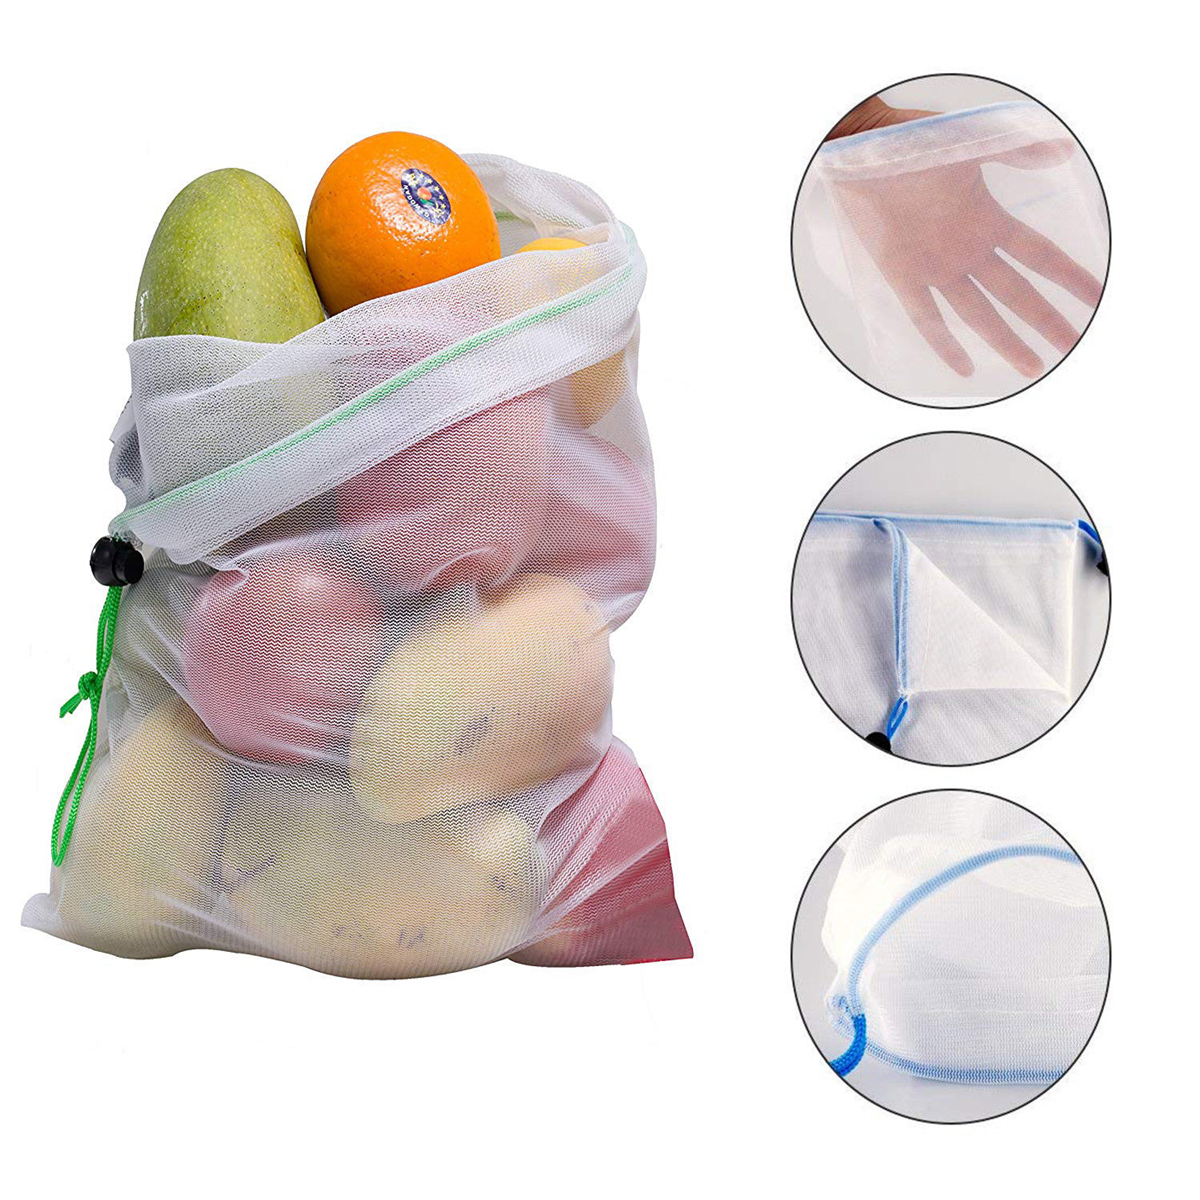 15pcs Reusable Mesh Produce Bags Vegetable Fruit Storage Shopping Grocery Bag